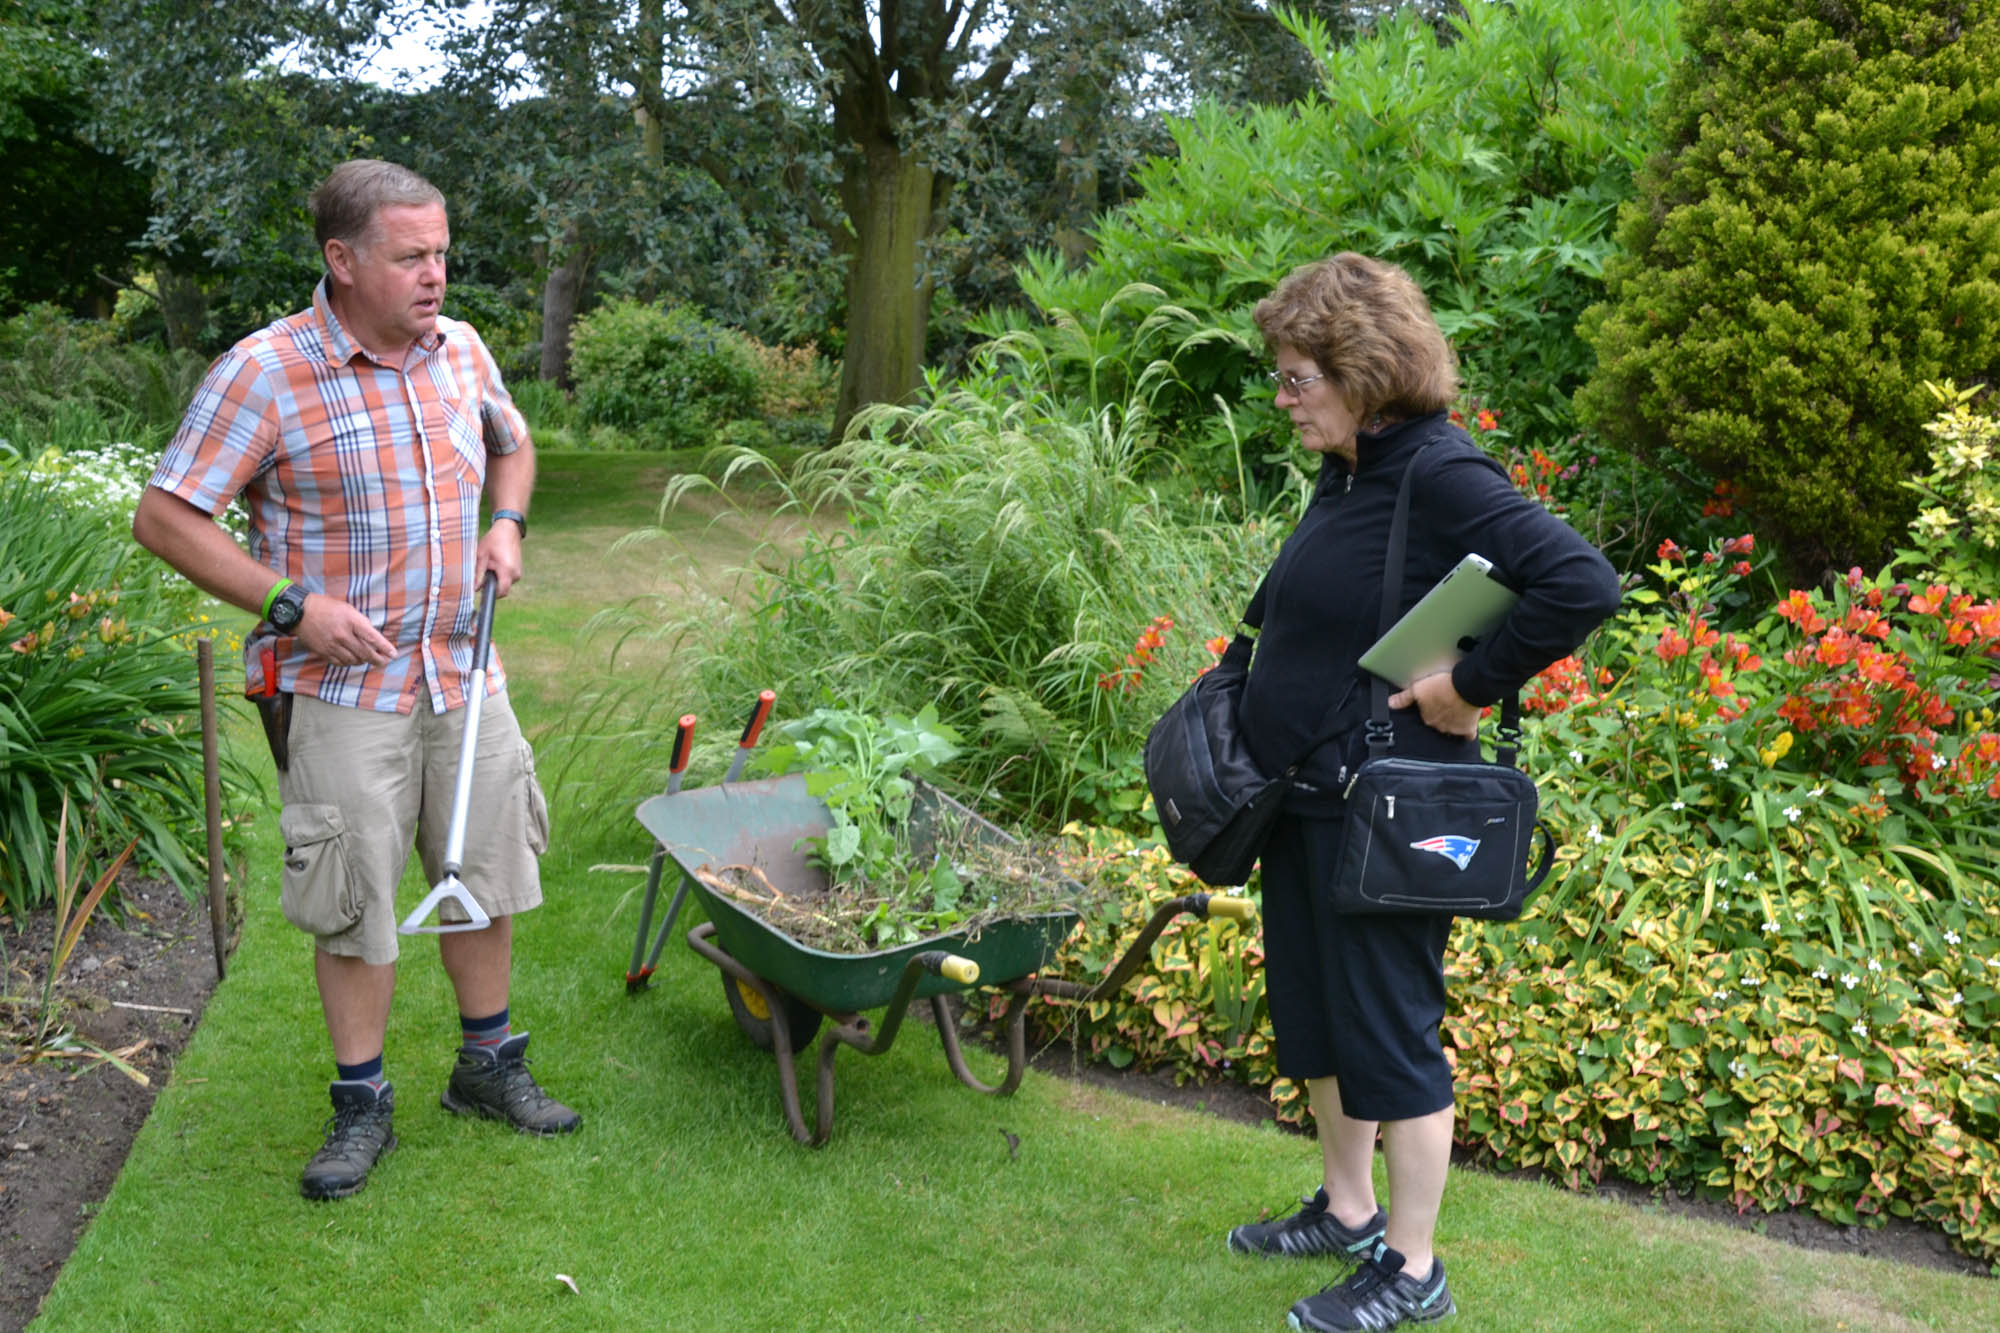 Woman asking gardener a question